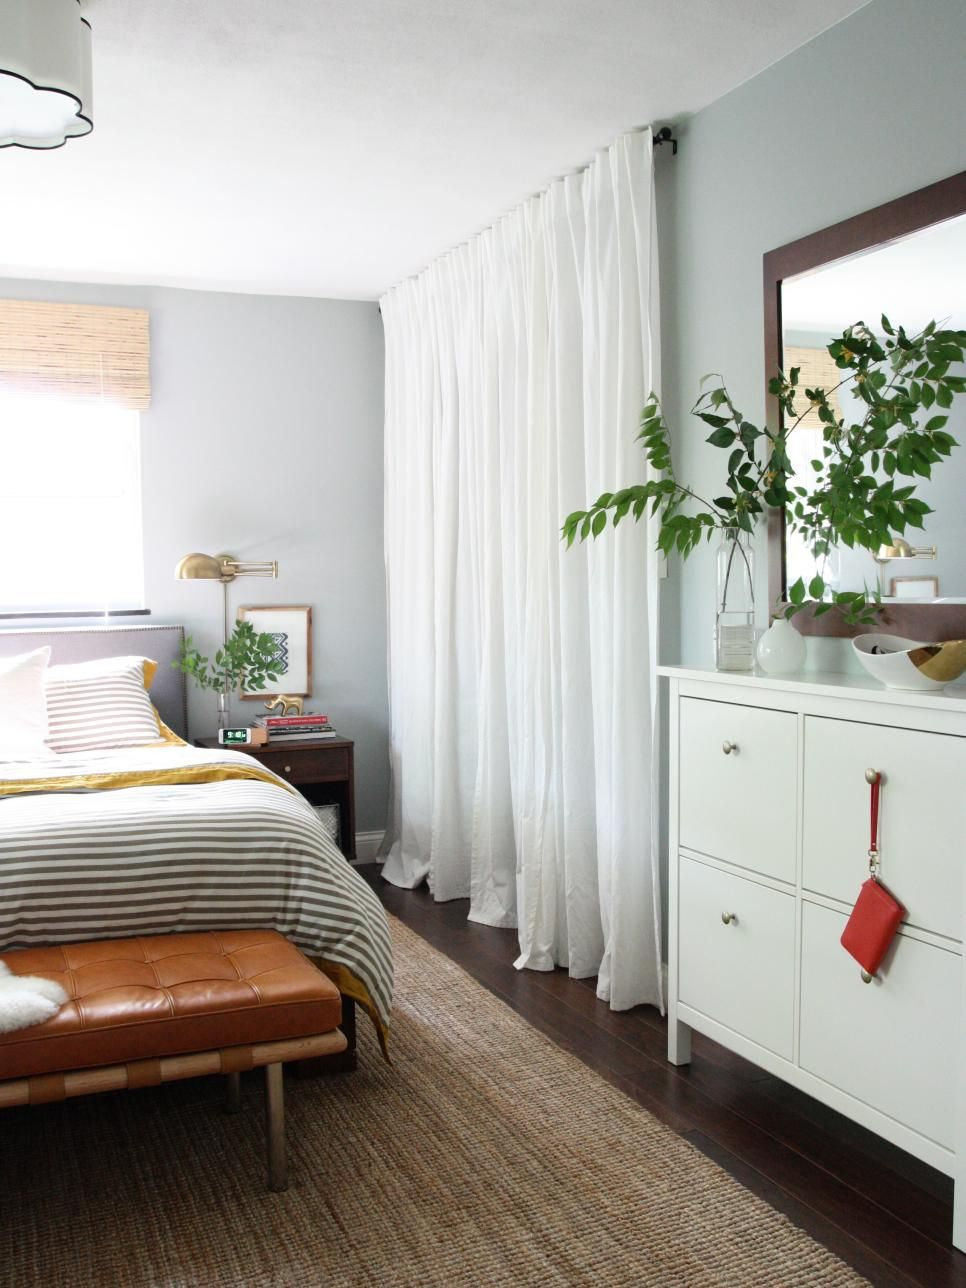 A Simple White Curtain Hung High And Wide Adds To The Pared Down